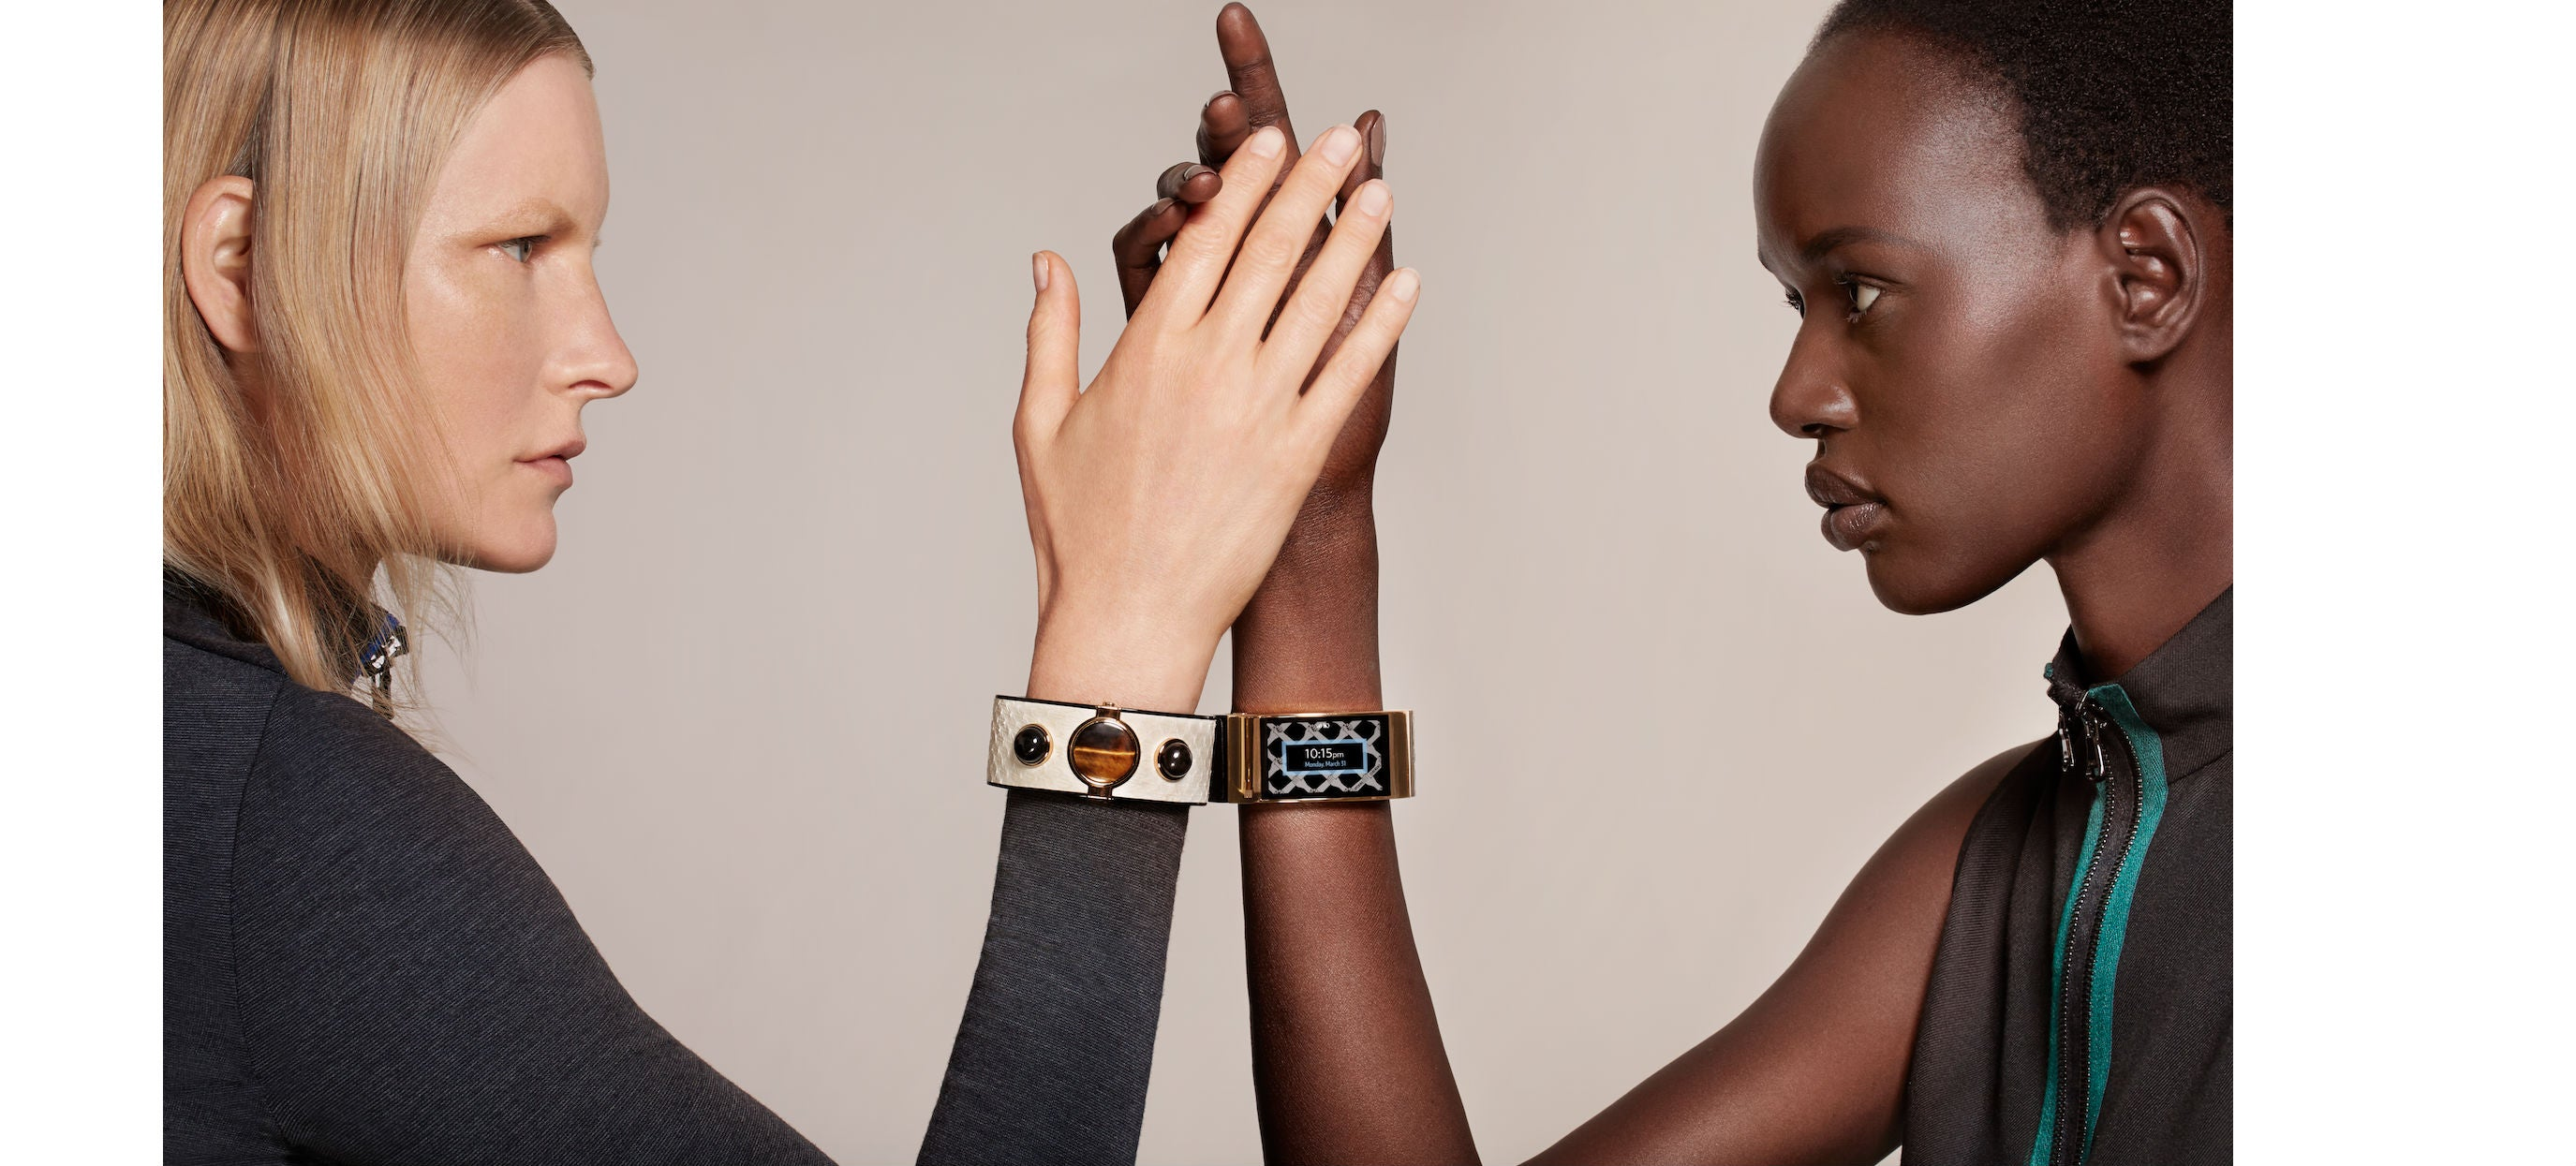 Intel's $US1,000 Wearable Is a Luxury Smart Bracelet For Women